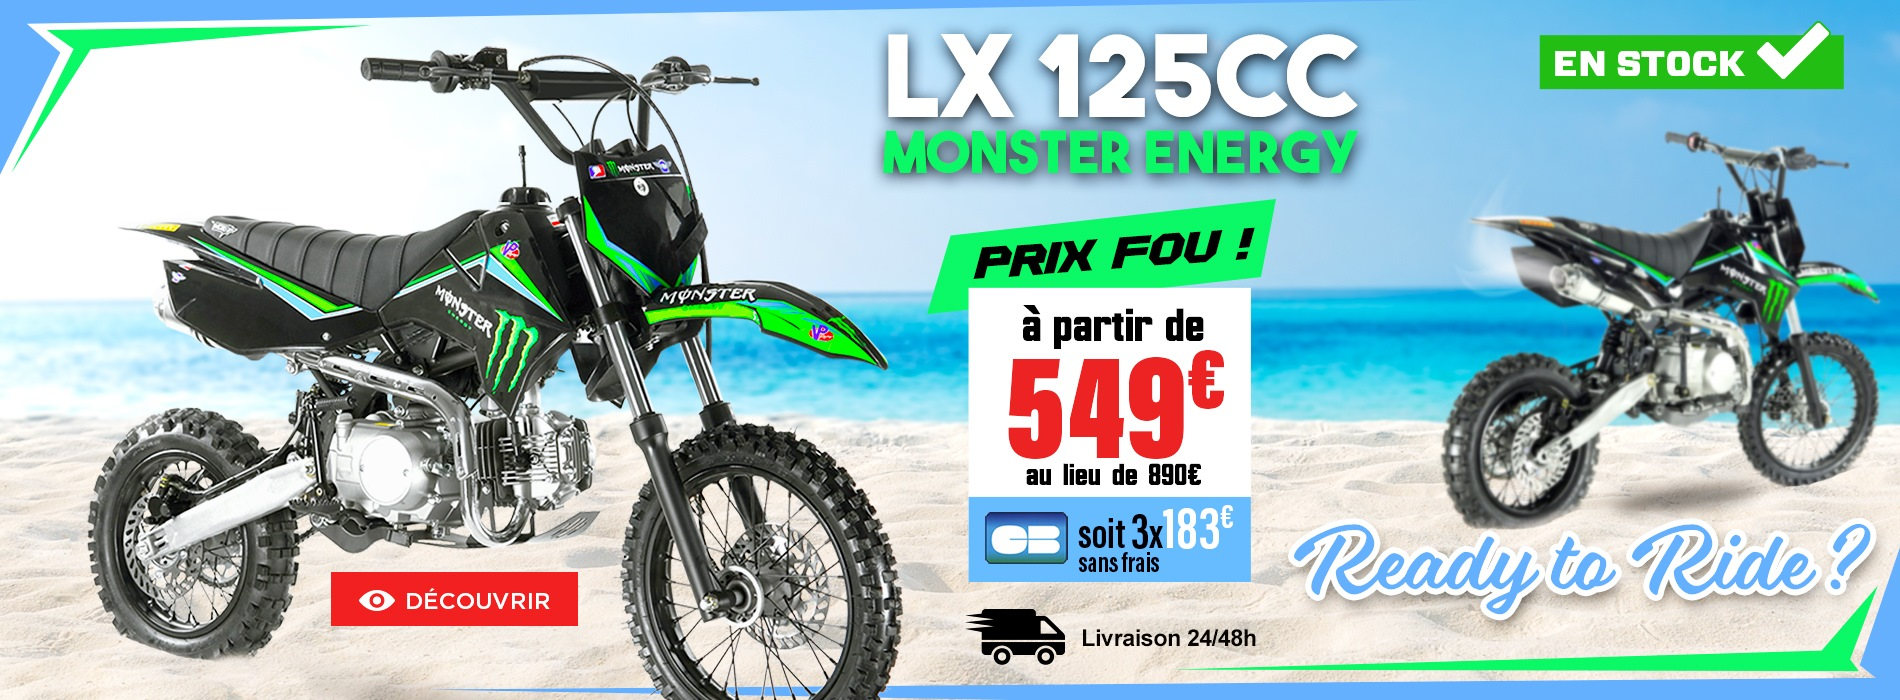 dirtbike lx 125cc 12-14 monster 2018